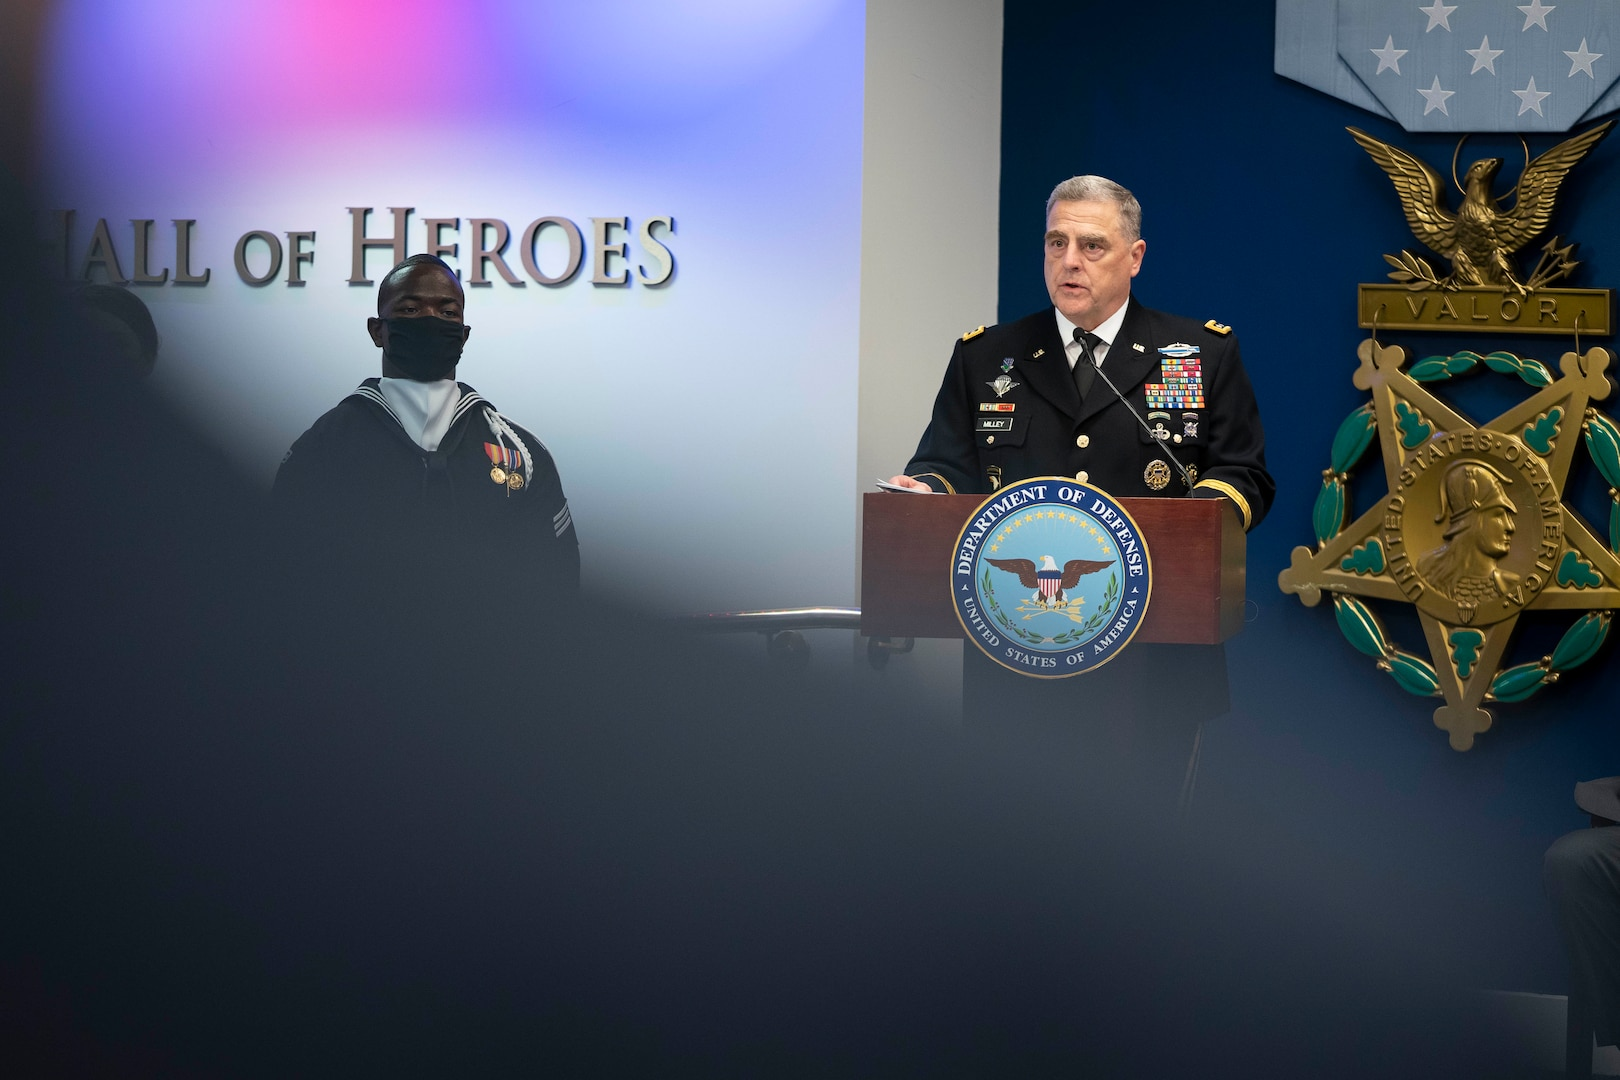 A man in a military uniform stands at a podium.